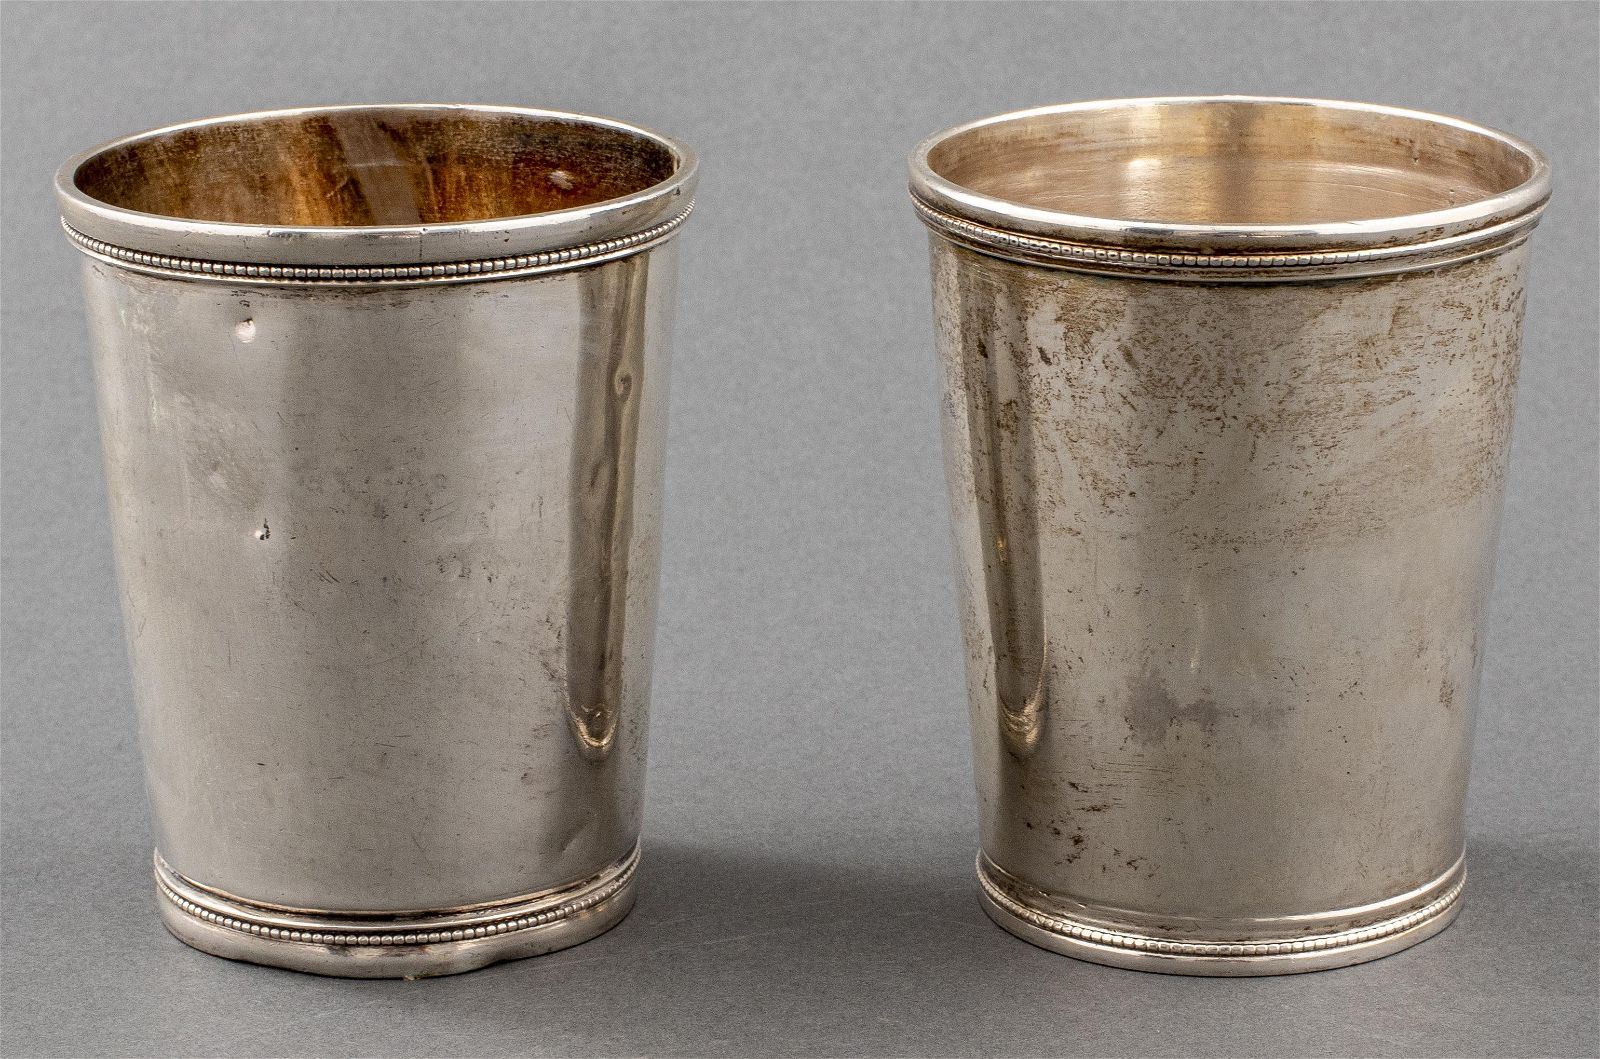 John Kitts & Co. Coin Silver Julep Cups, 2